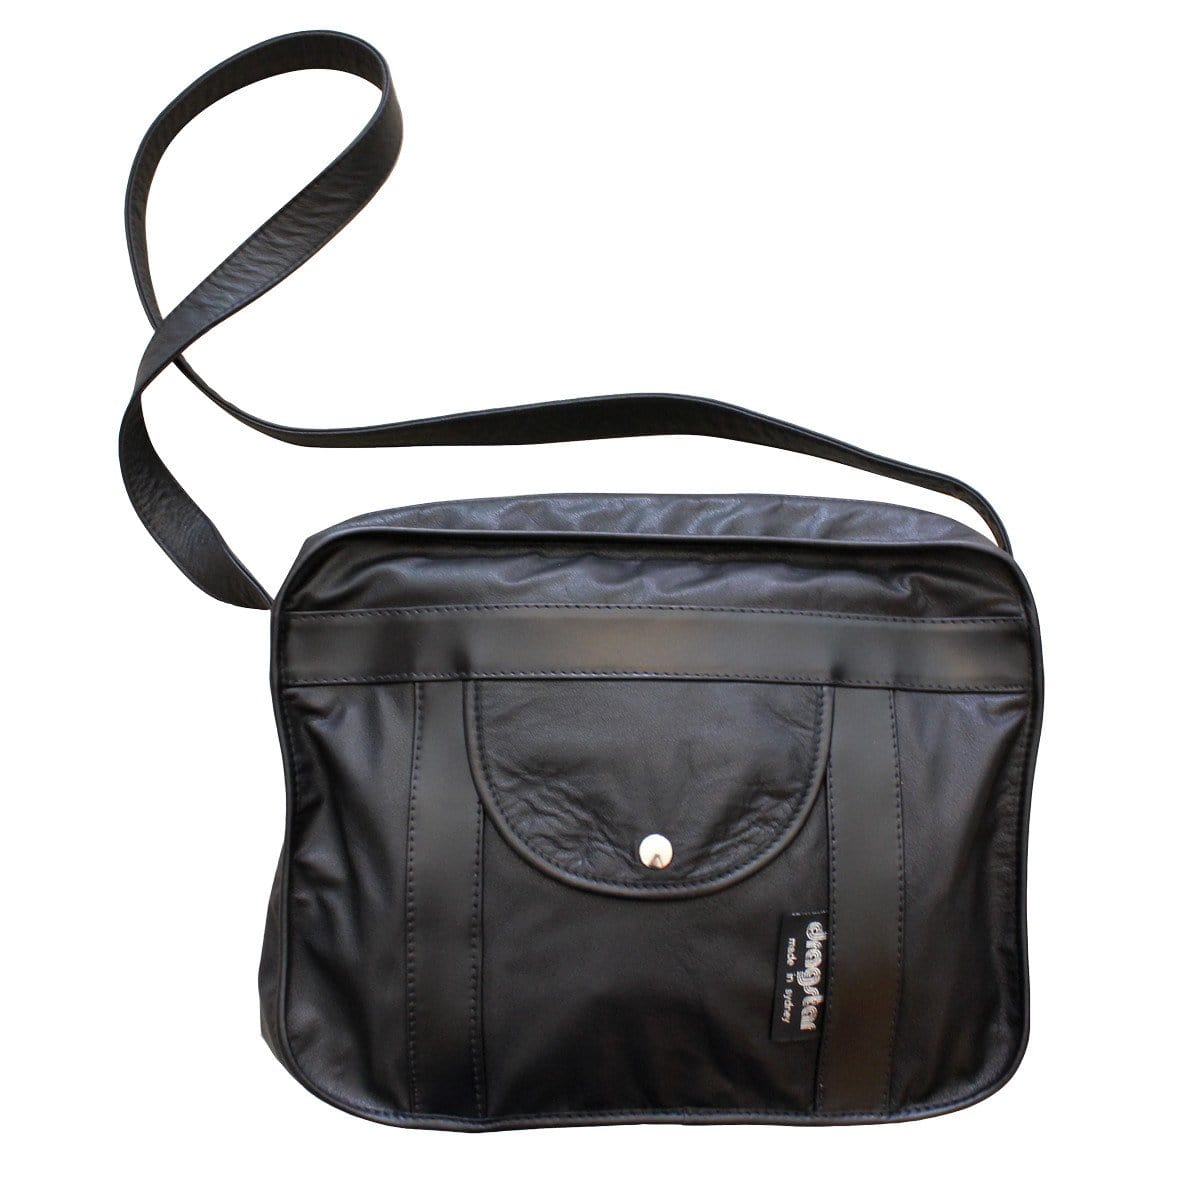 98f29547ffdc Dragstar Leather Satchel Bag - Black – Dragstar Clothing Australia